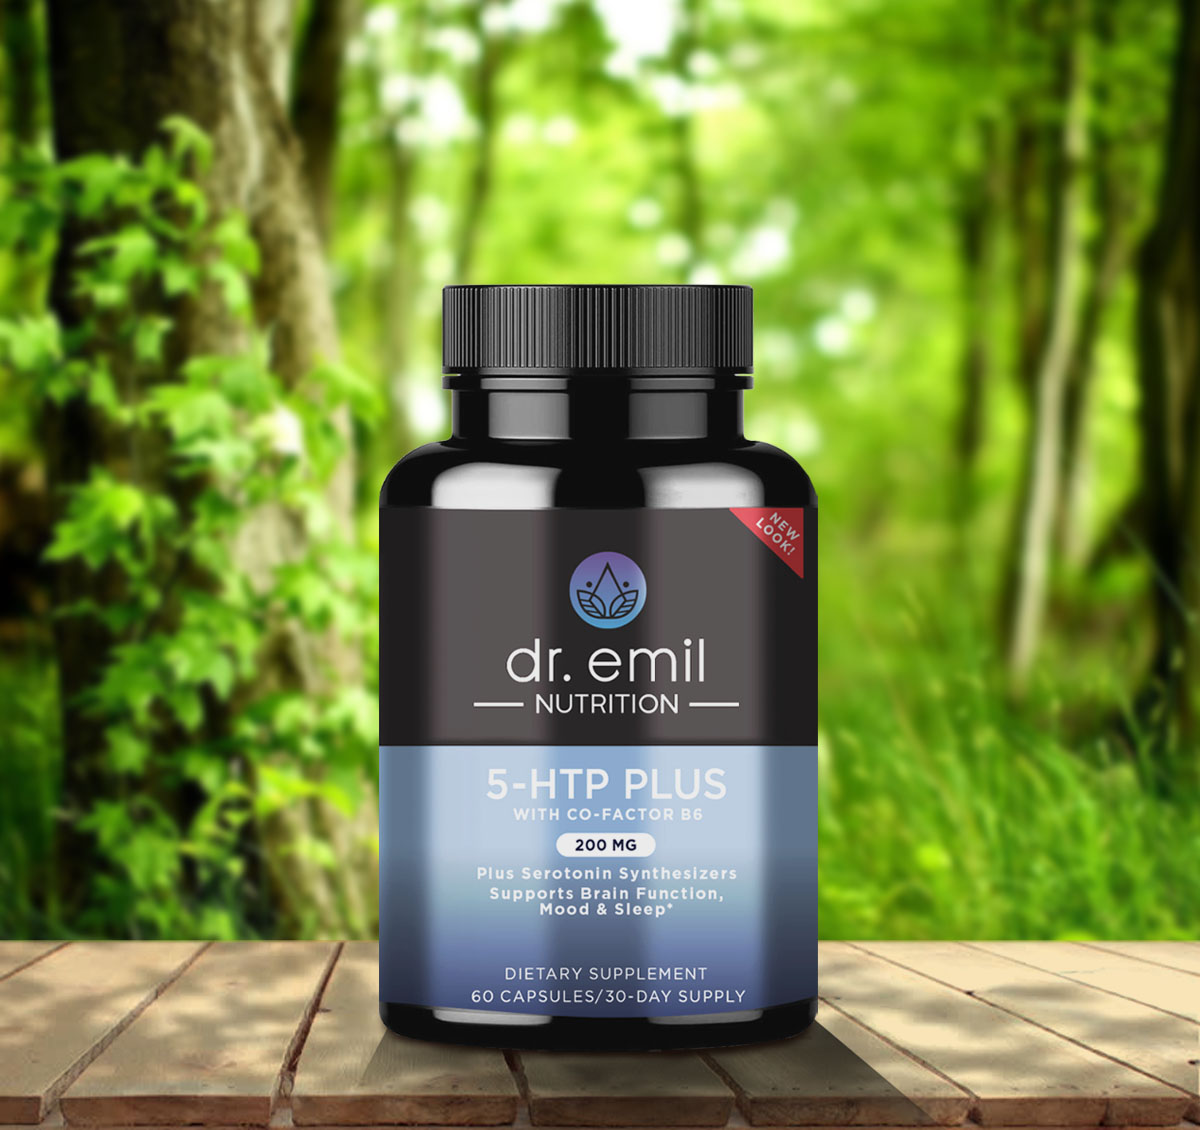 Dr. Emil Nutrition's 5 HTP plus